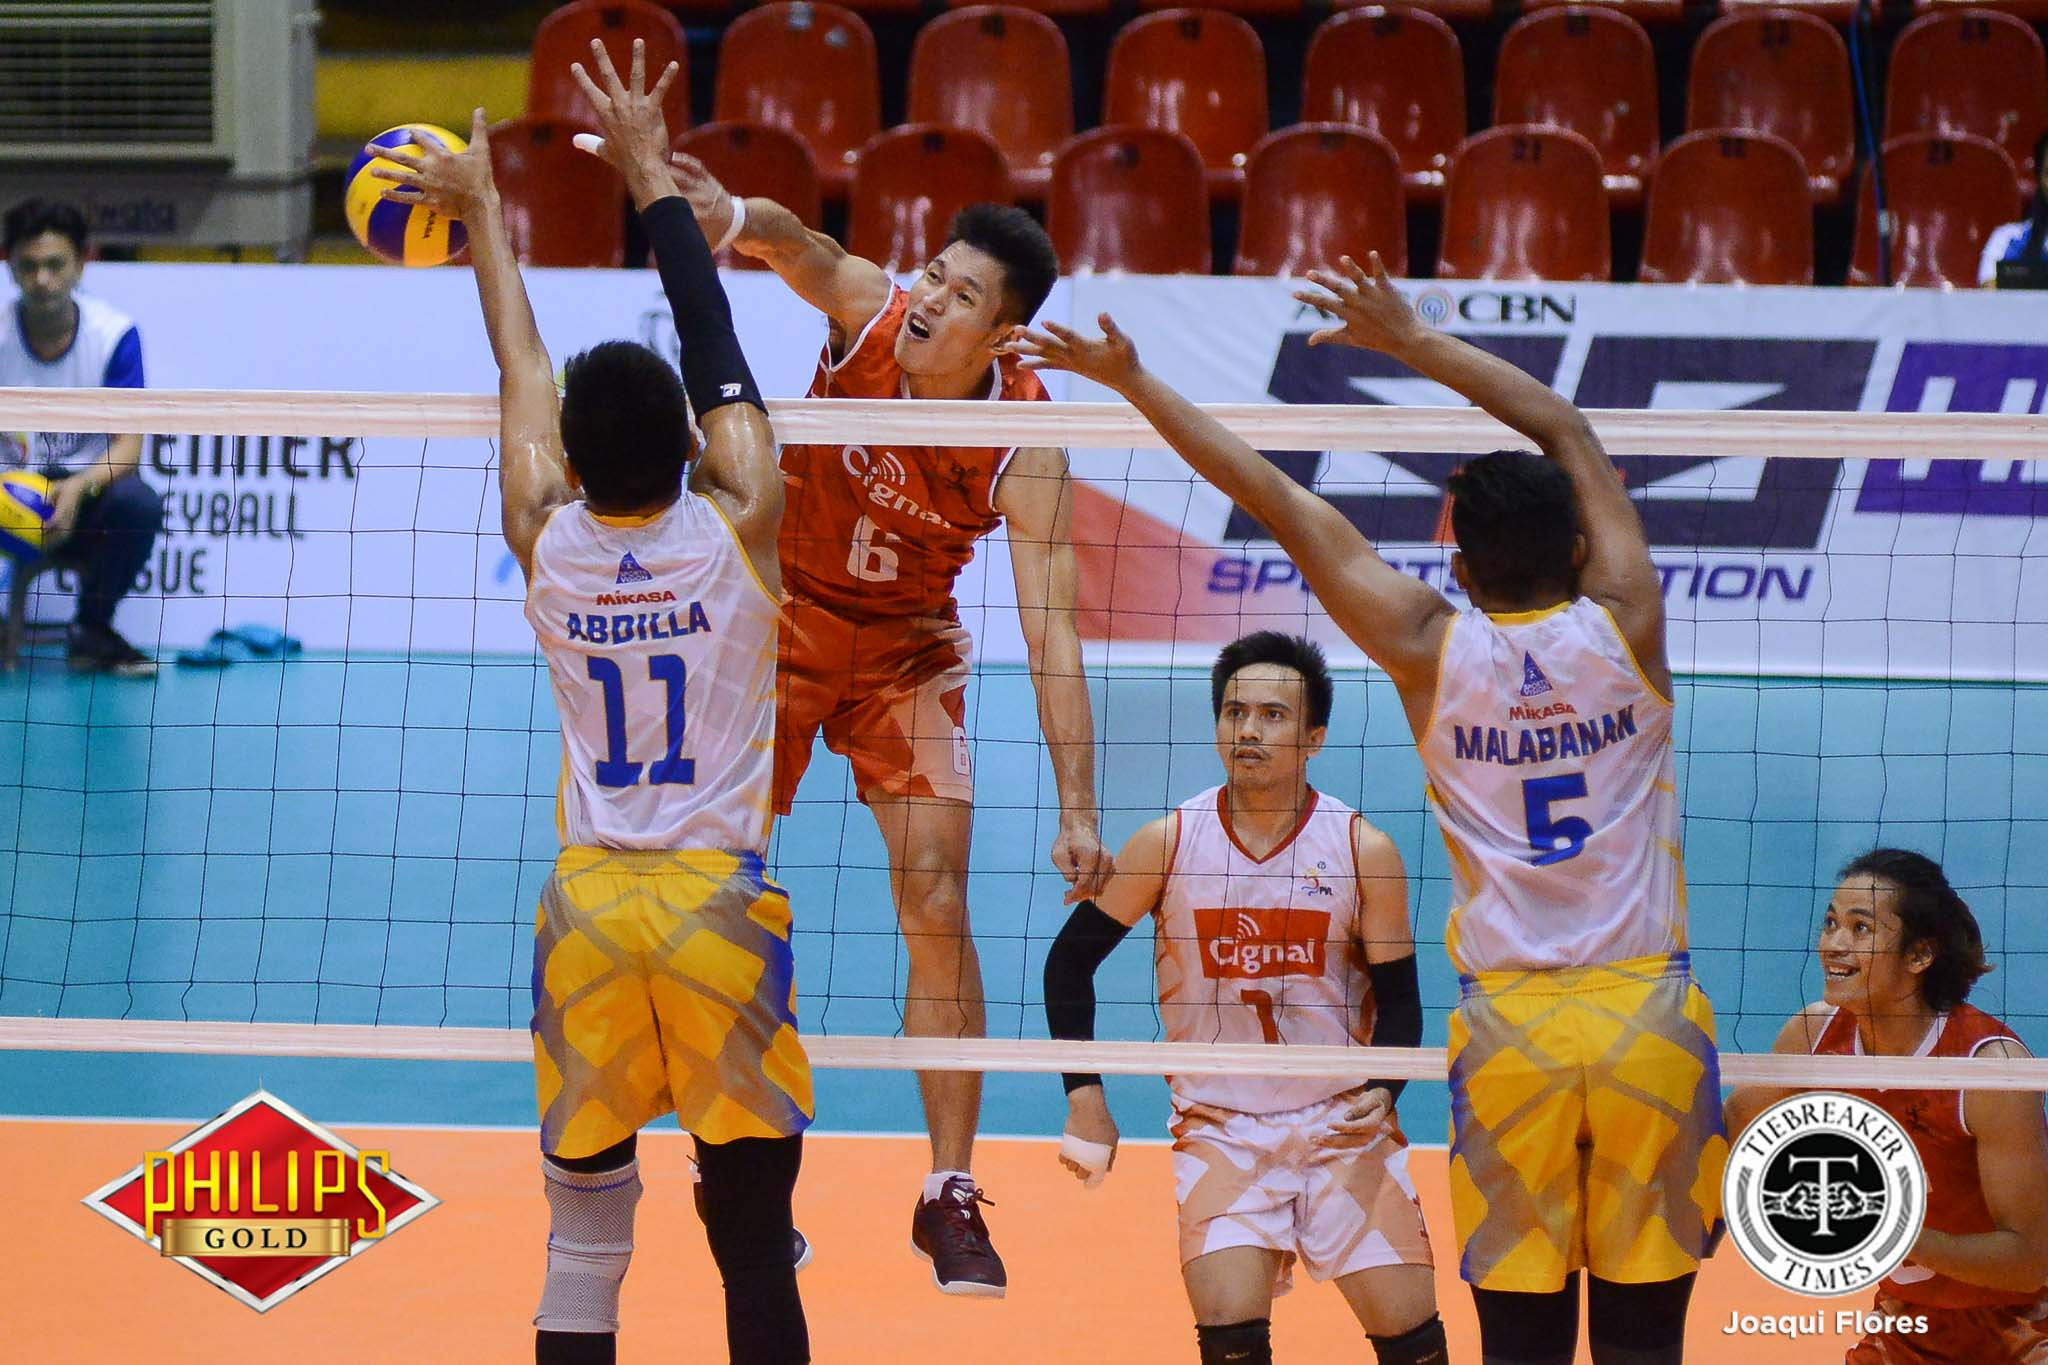 Tiebreaker Times Cignal ends losing skid against Air Force to take Finals series lead News PVL Volleyball  Vince Mangulabnan Sandy Montero Saku Capate Rhovyl Verayo Oliver Almadro Mark Alfafara Kim Malabunga Cignal HD Spikers Bryan Bagunas Air Force Airmen 2017 PVL Season 2017 PVL Men's Reinforced Conference